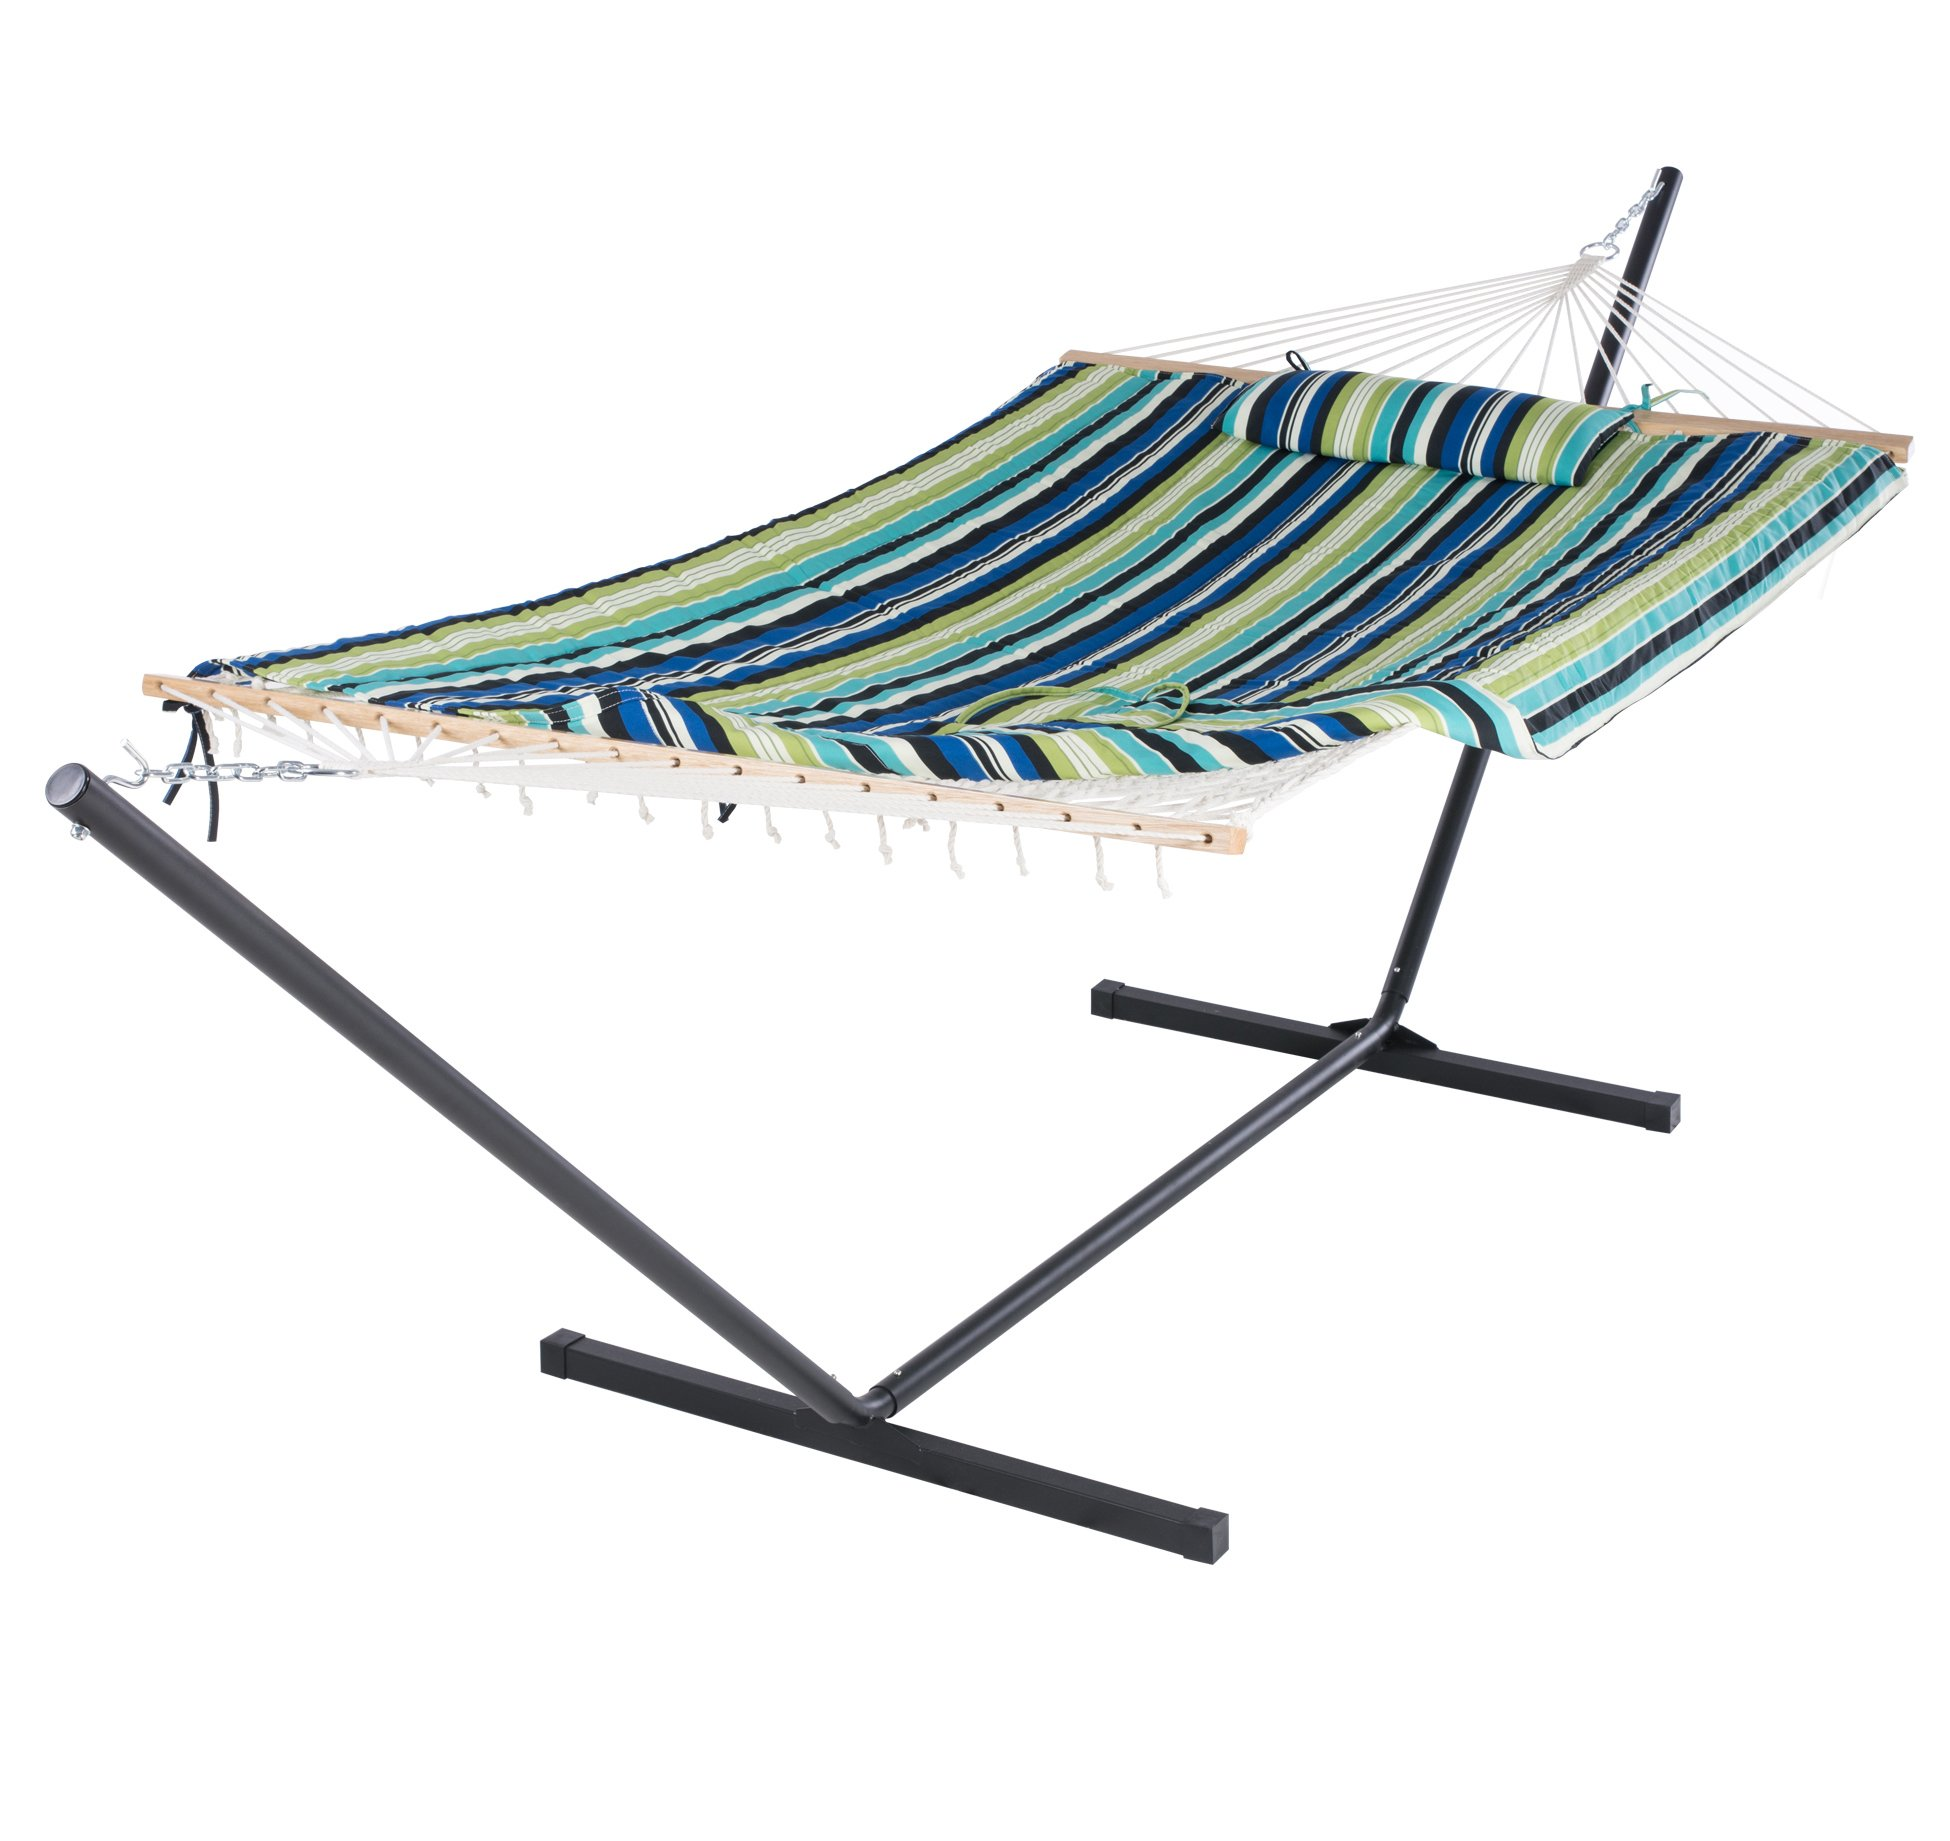 SUNCREAT Cotton Rope Hammock with 12 Foot Steel Stand, Includes Pad and Pillow, iPad Bag and Cup Holder-Blue